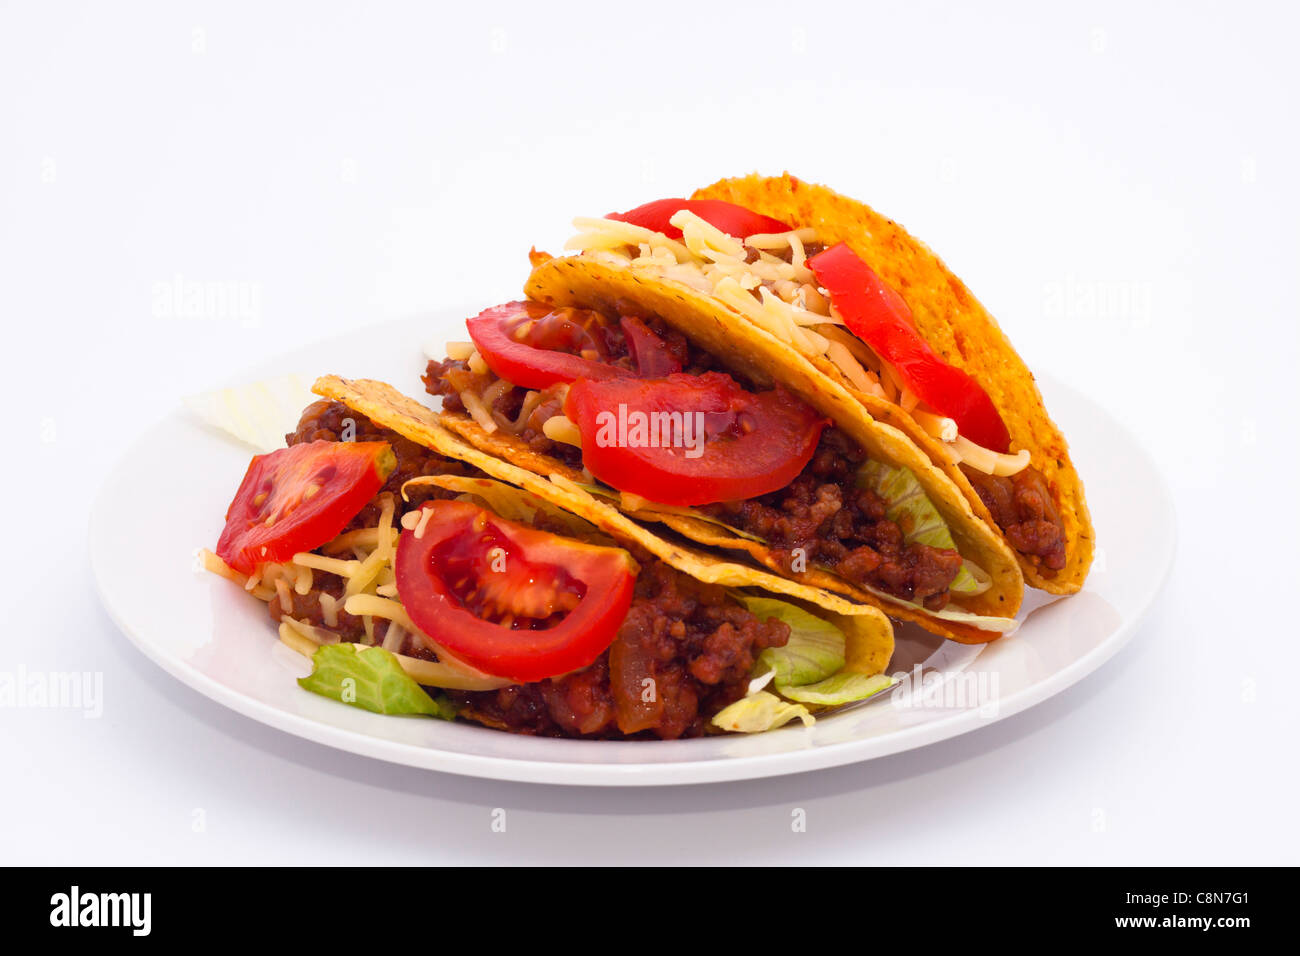 Delicious Mexican tacos on plate, isolated on white background. - Stock Image